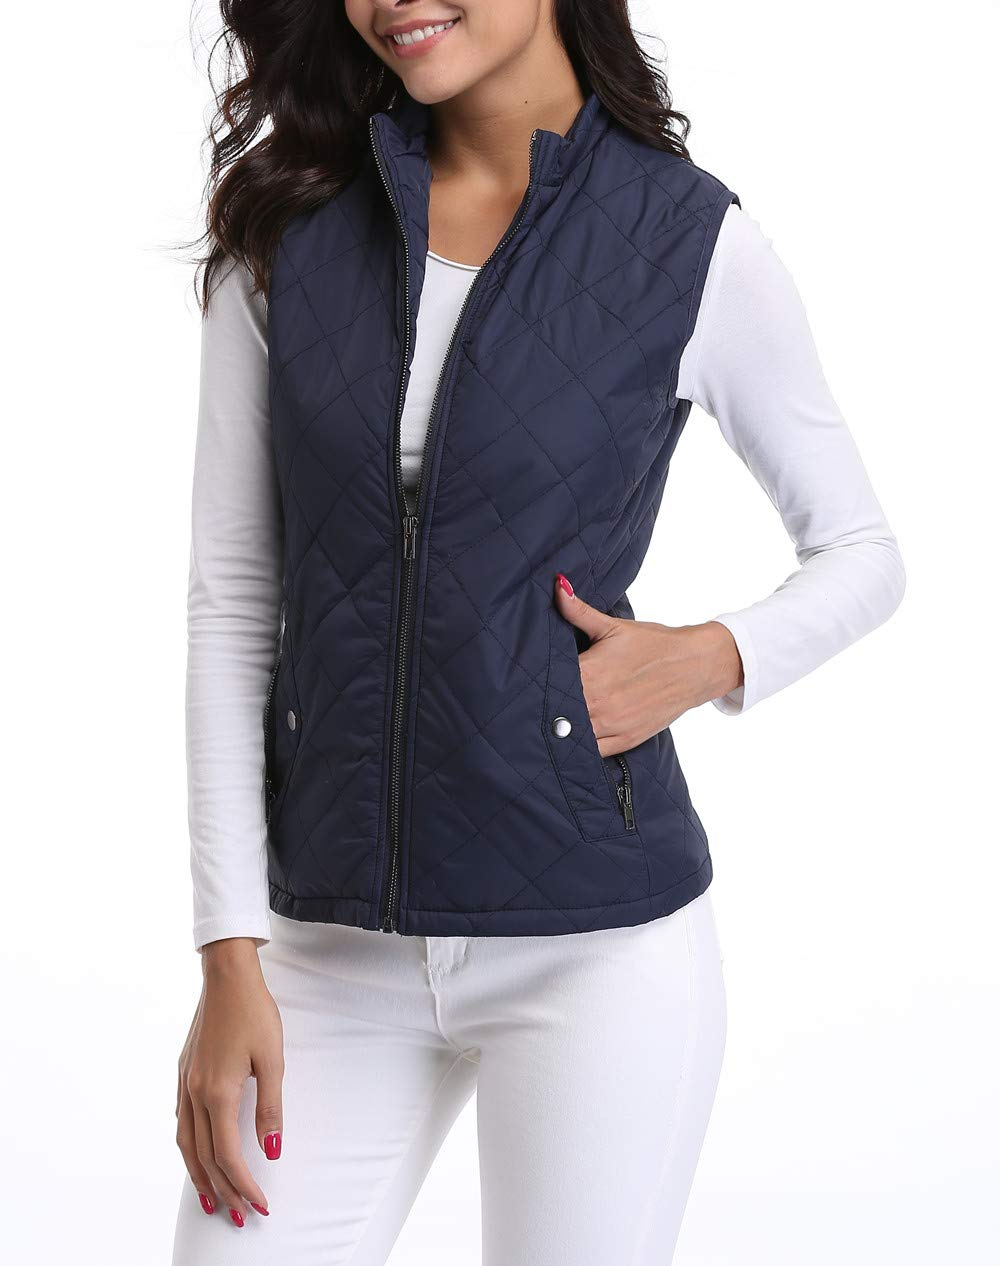 Miss Moly Zip up Stand Collar Lightweight Warm Quilted Gilets Padded Vest